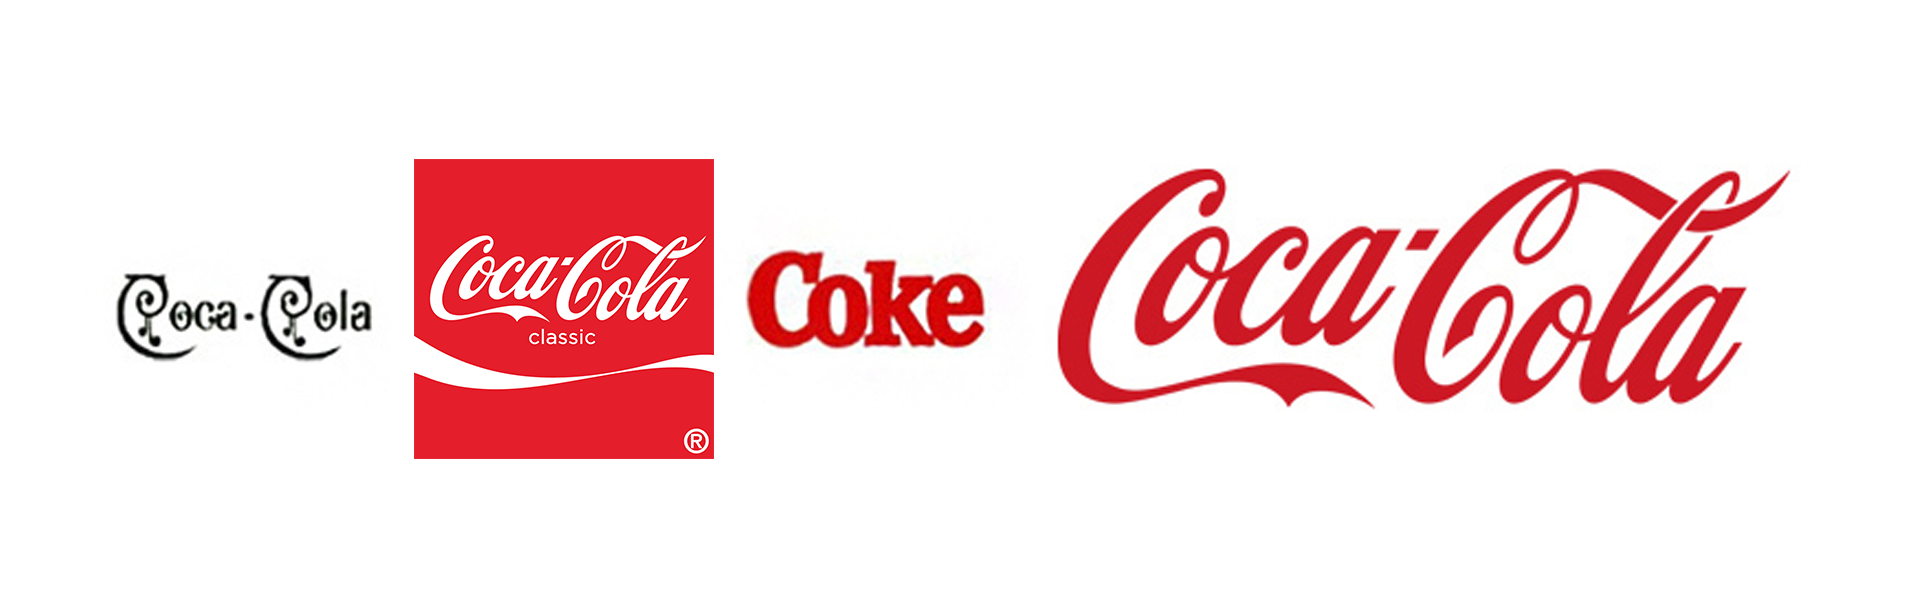 The Coca-Cola Brand Logo Story